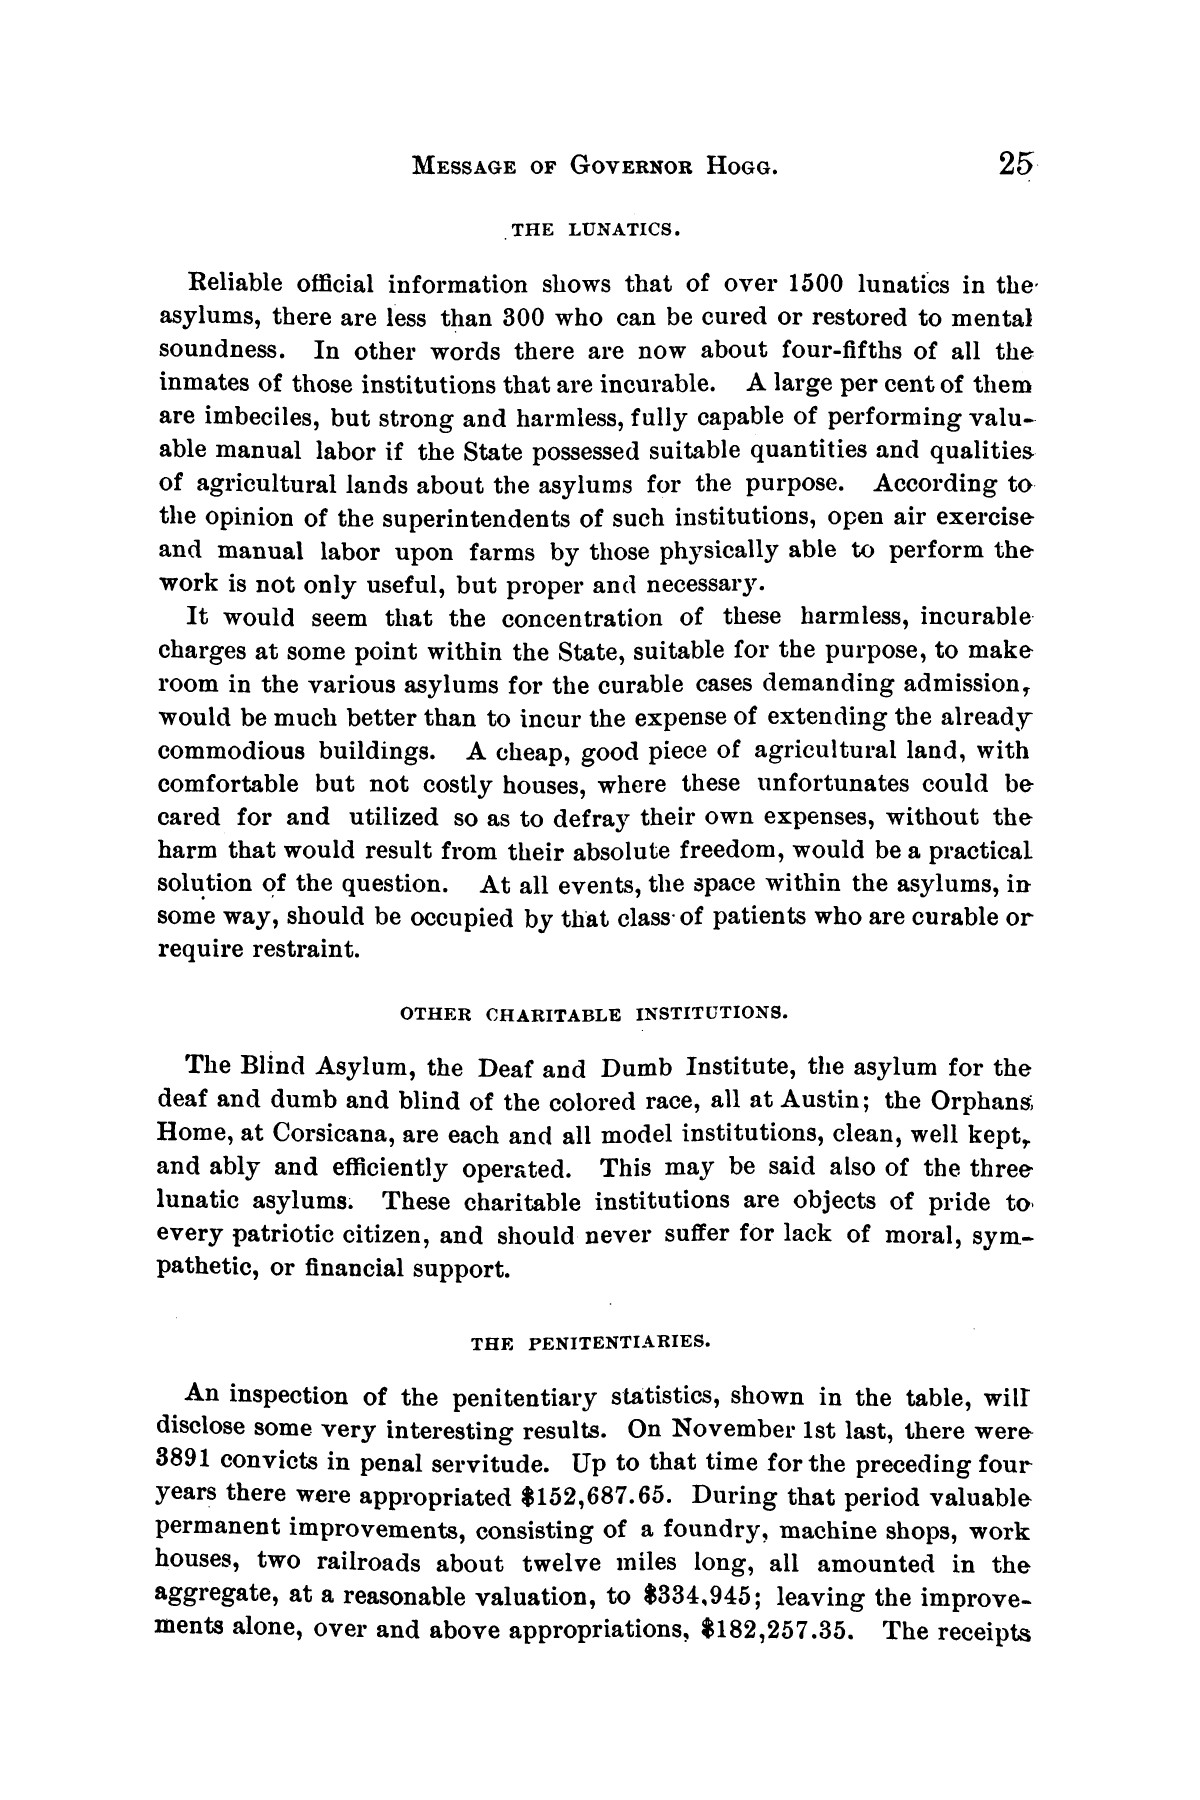 Message of Governor James S. Hogg to the twenty-fourth legislature of Texas                                                                                                      [Sequence #]: 25 of 48